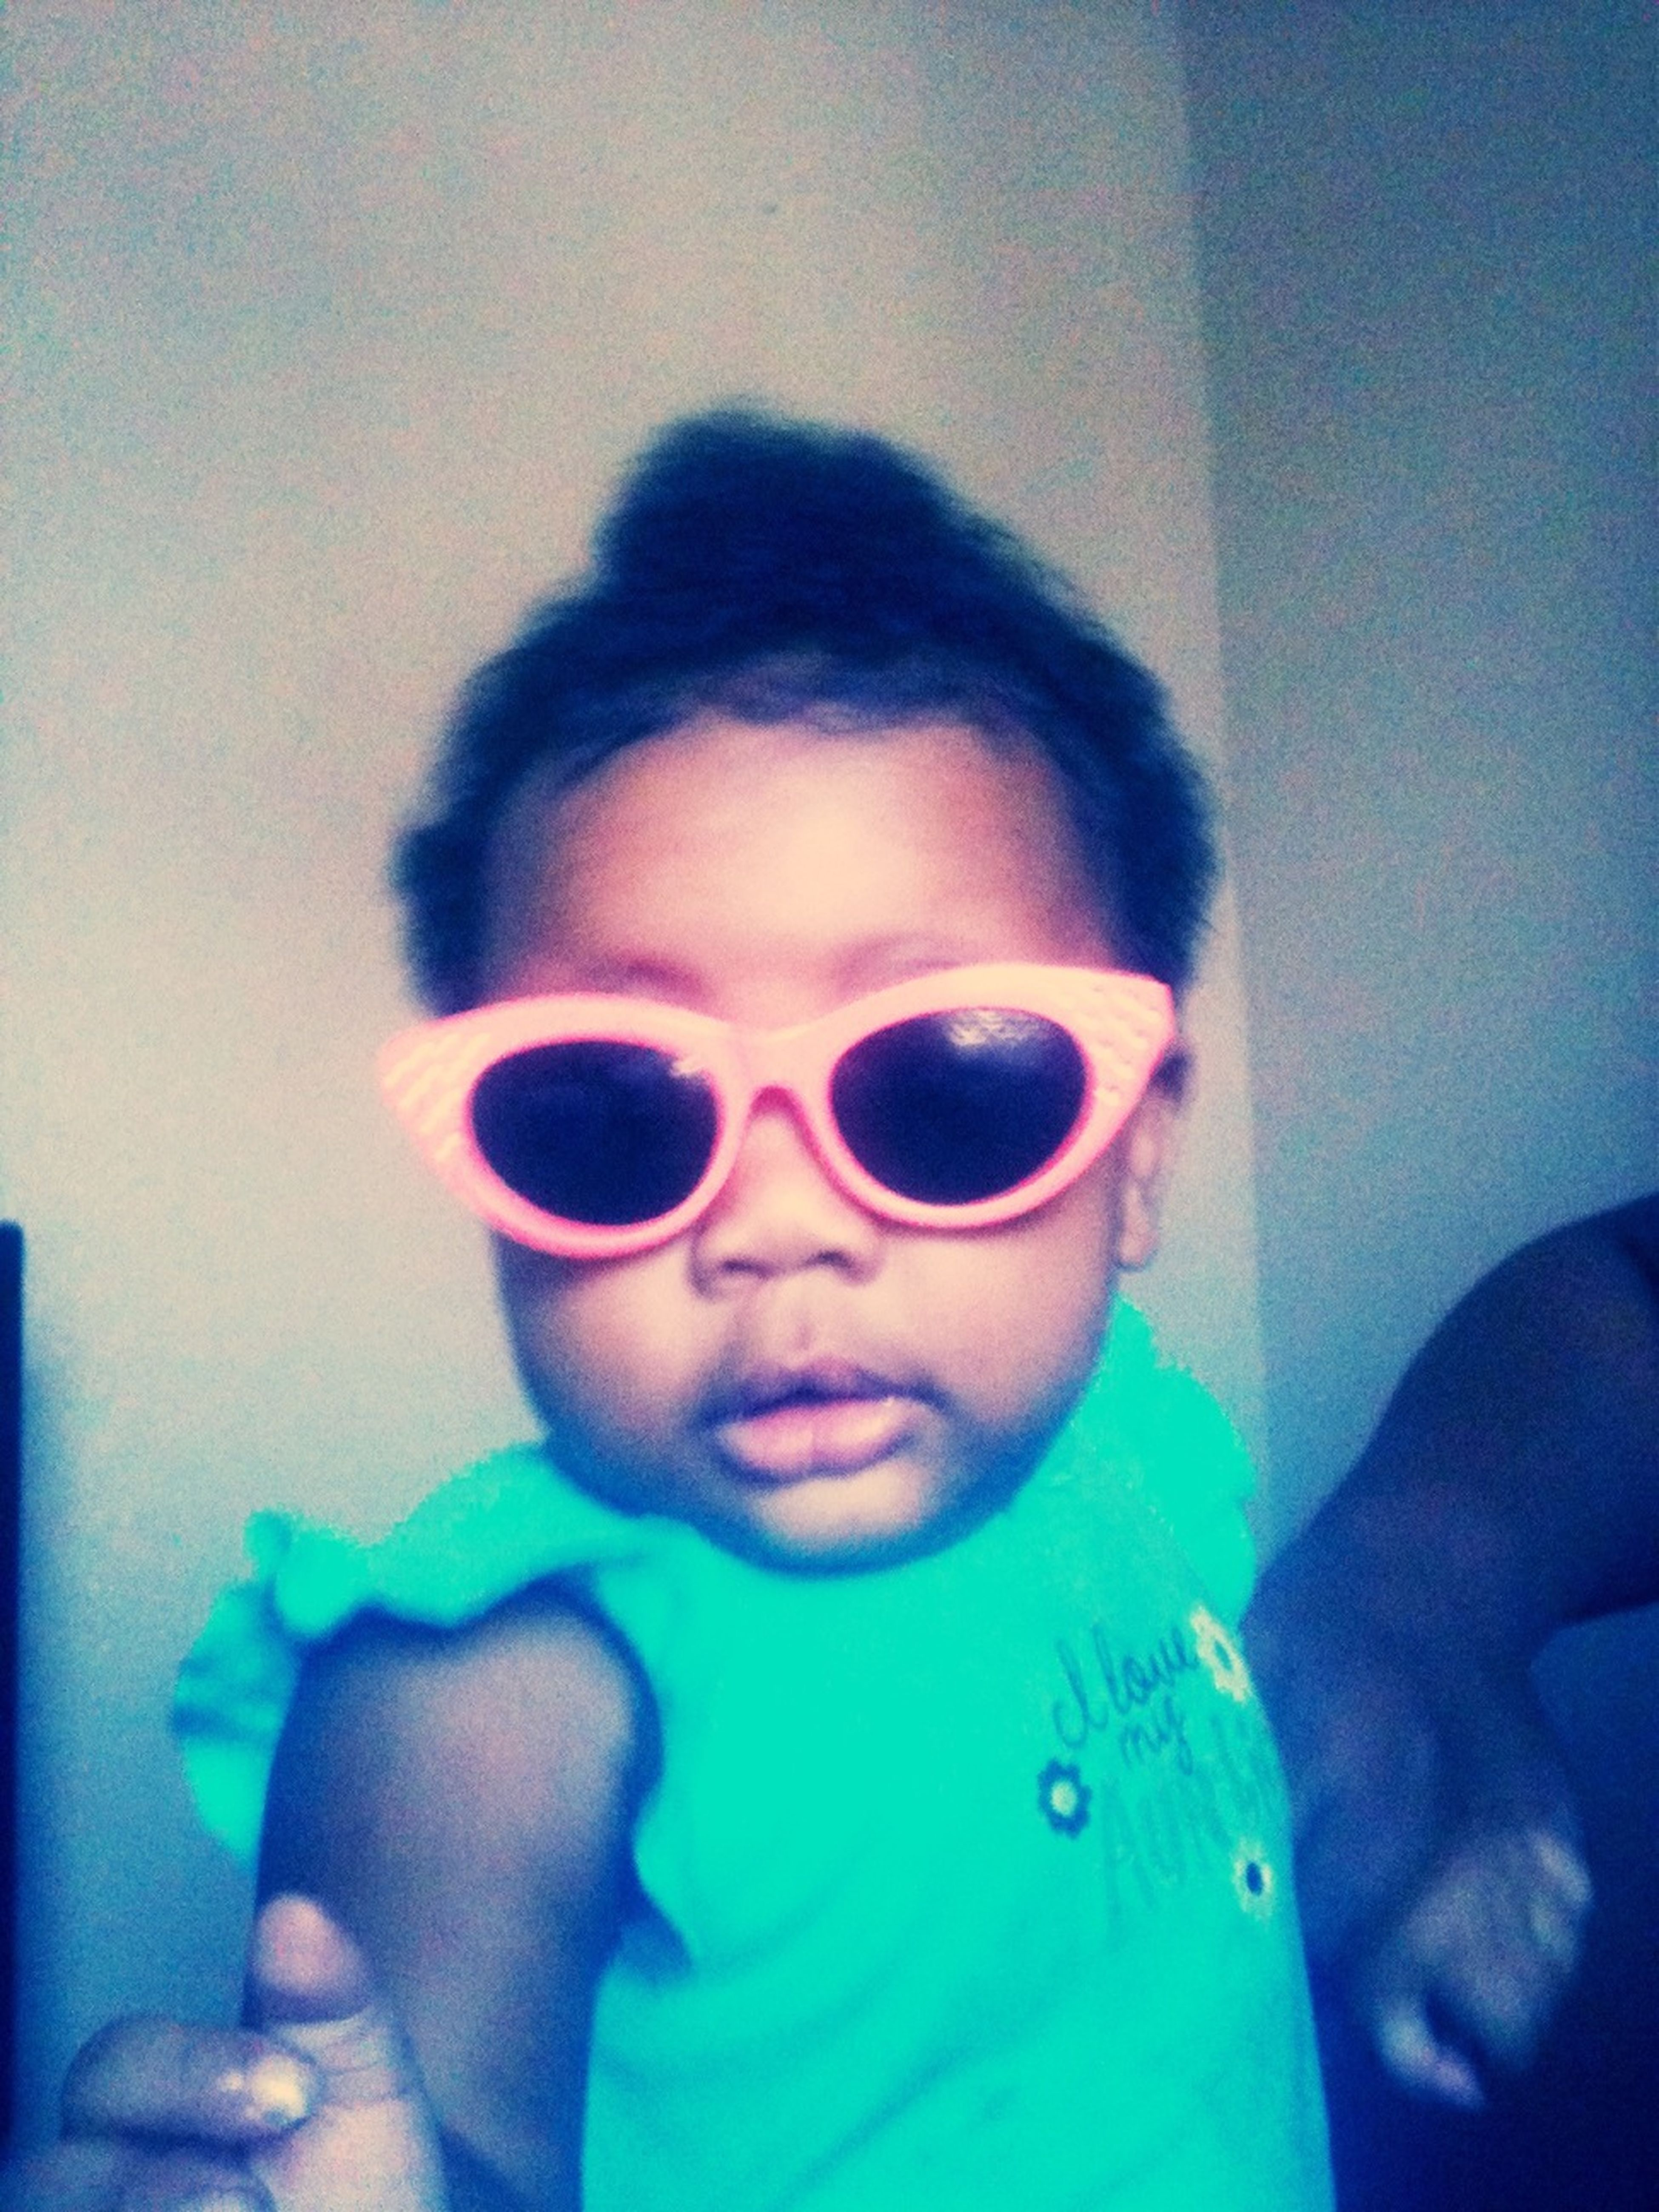 My Lil Sis Think She Grown